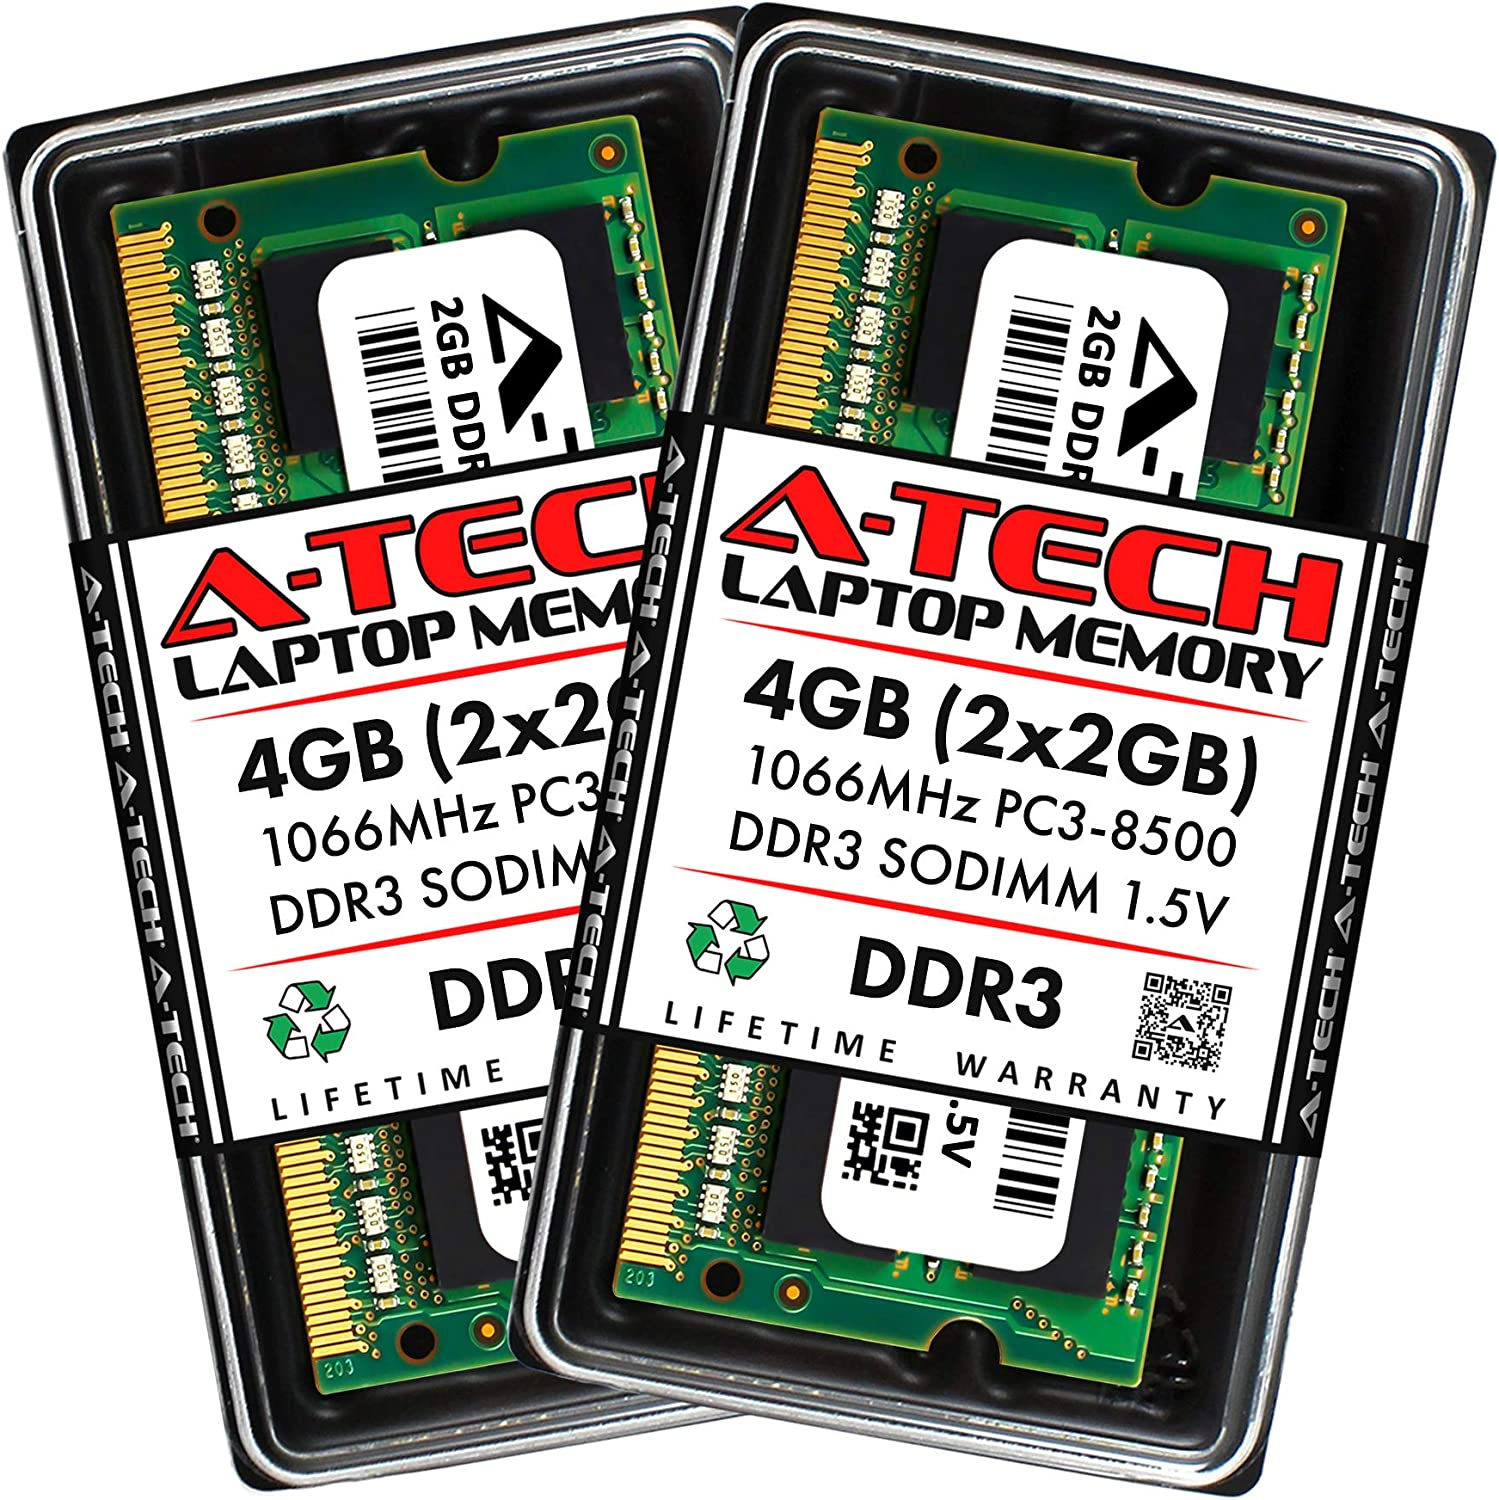 A-Tech 4GB (2 x 2GB) DDR3 1066MHz PC3-8500 Laptop RAM SODIMM Kit | Non-ECC Unbuffered 204-Pin Memory Upgrade Modules